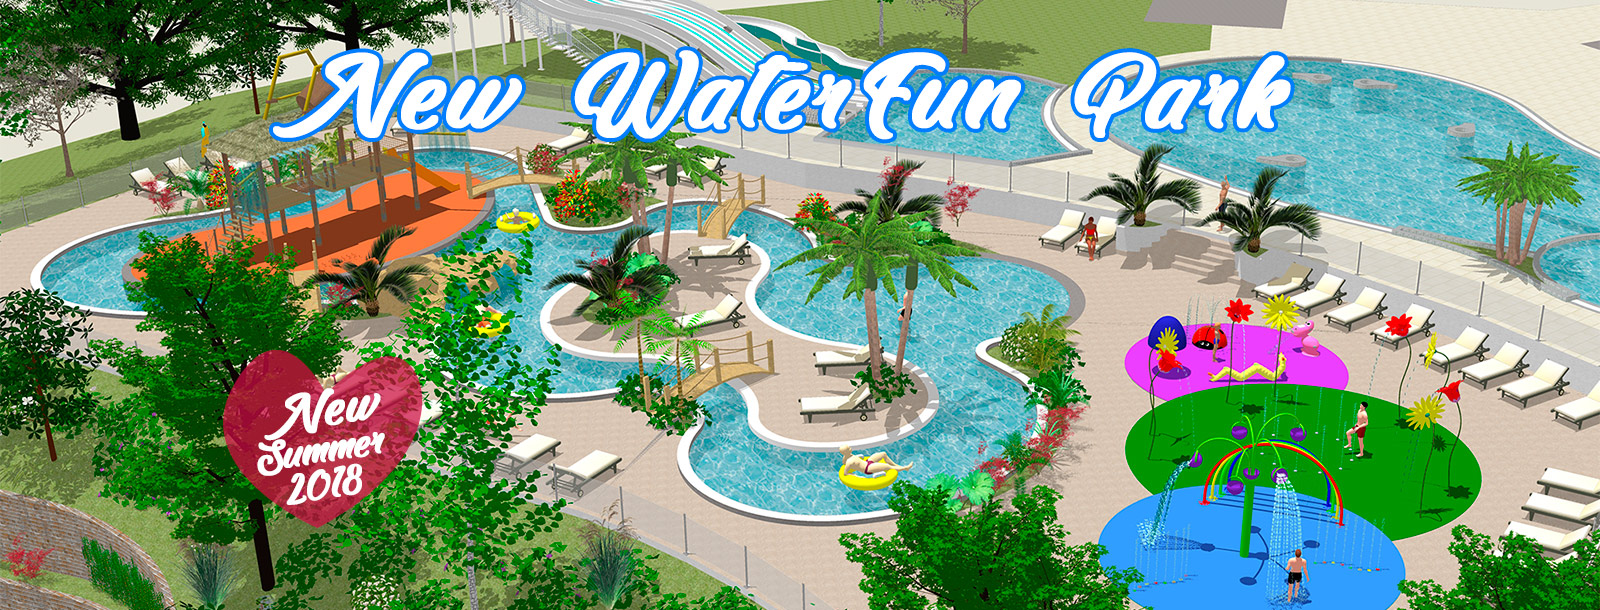 The Aquatic Park double its size for unforgettable holidays!